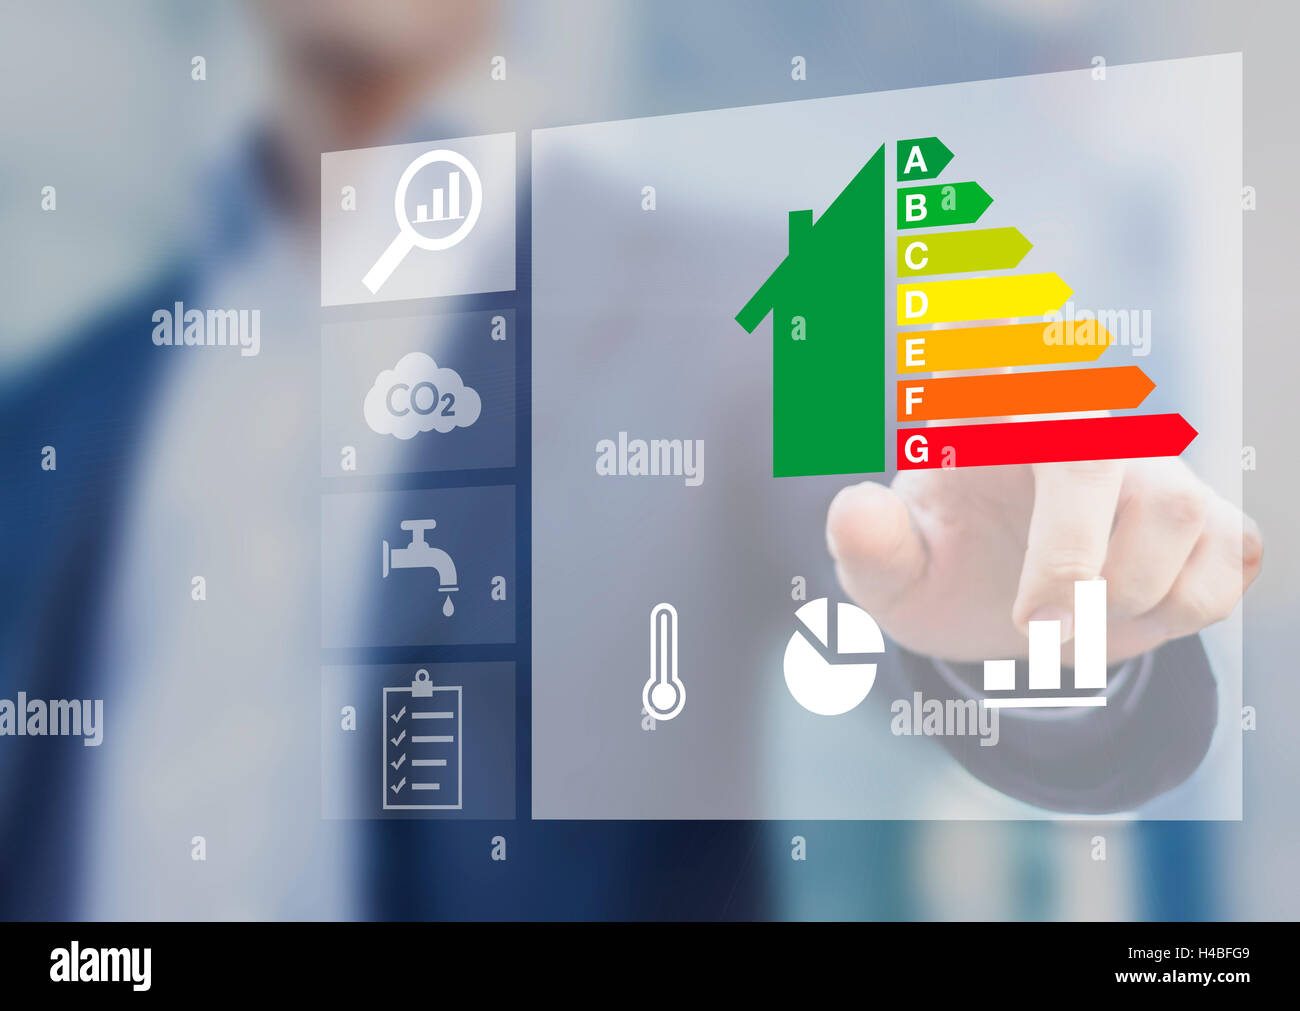 Energy efficiency rating of buildings for sustainable development - Stock Image